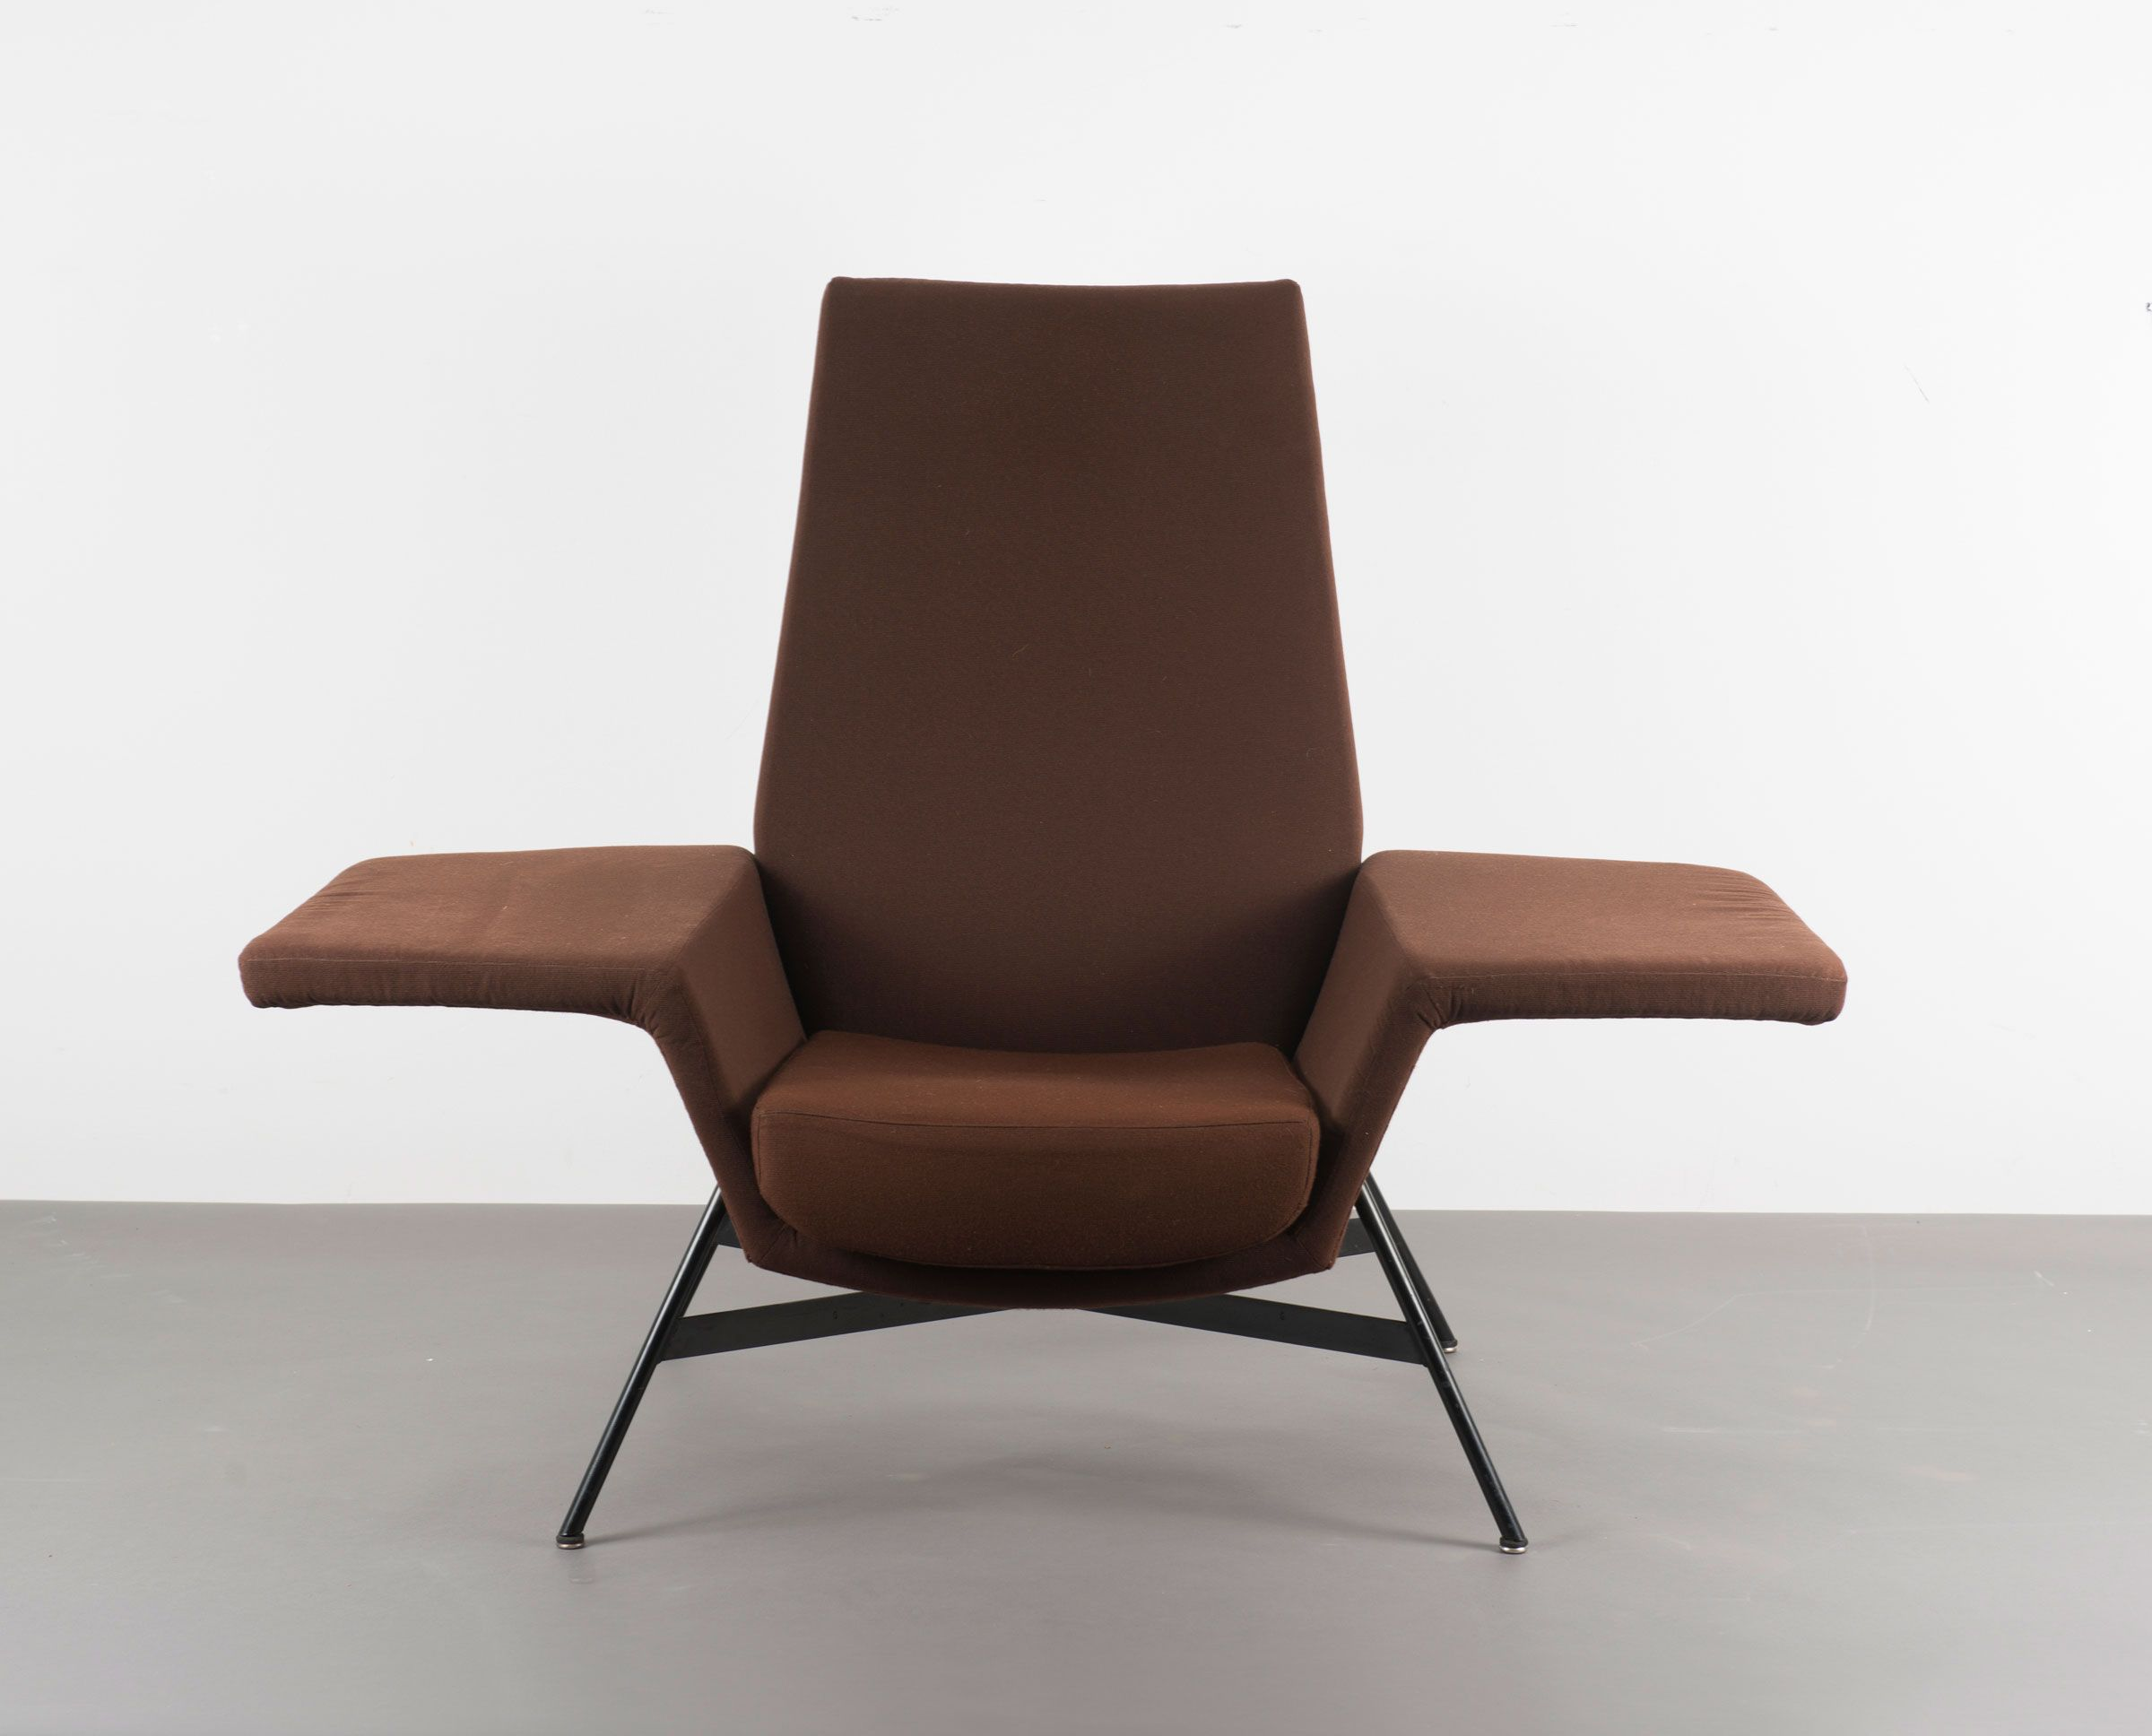 Walter Knoll Herrenberg Los 119c277 - Armlehnsessel, 1961 Kolb, Otto Knoll, Walter, Herrenberg -> Auktion 119c - Text: Deutsche Version | Design, Jugendstil, Art Deco